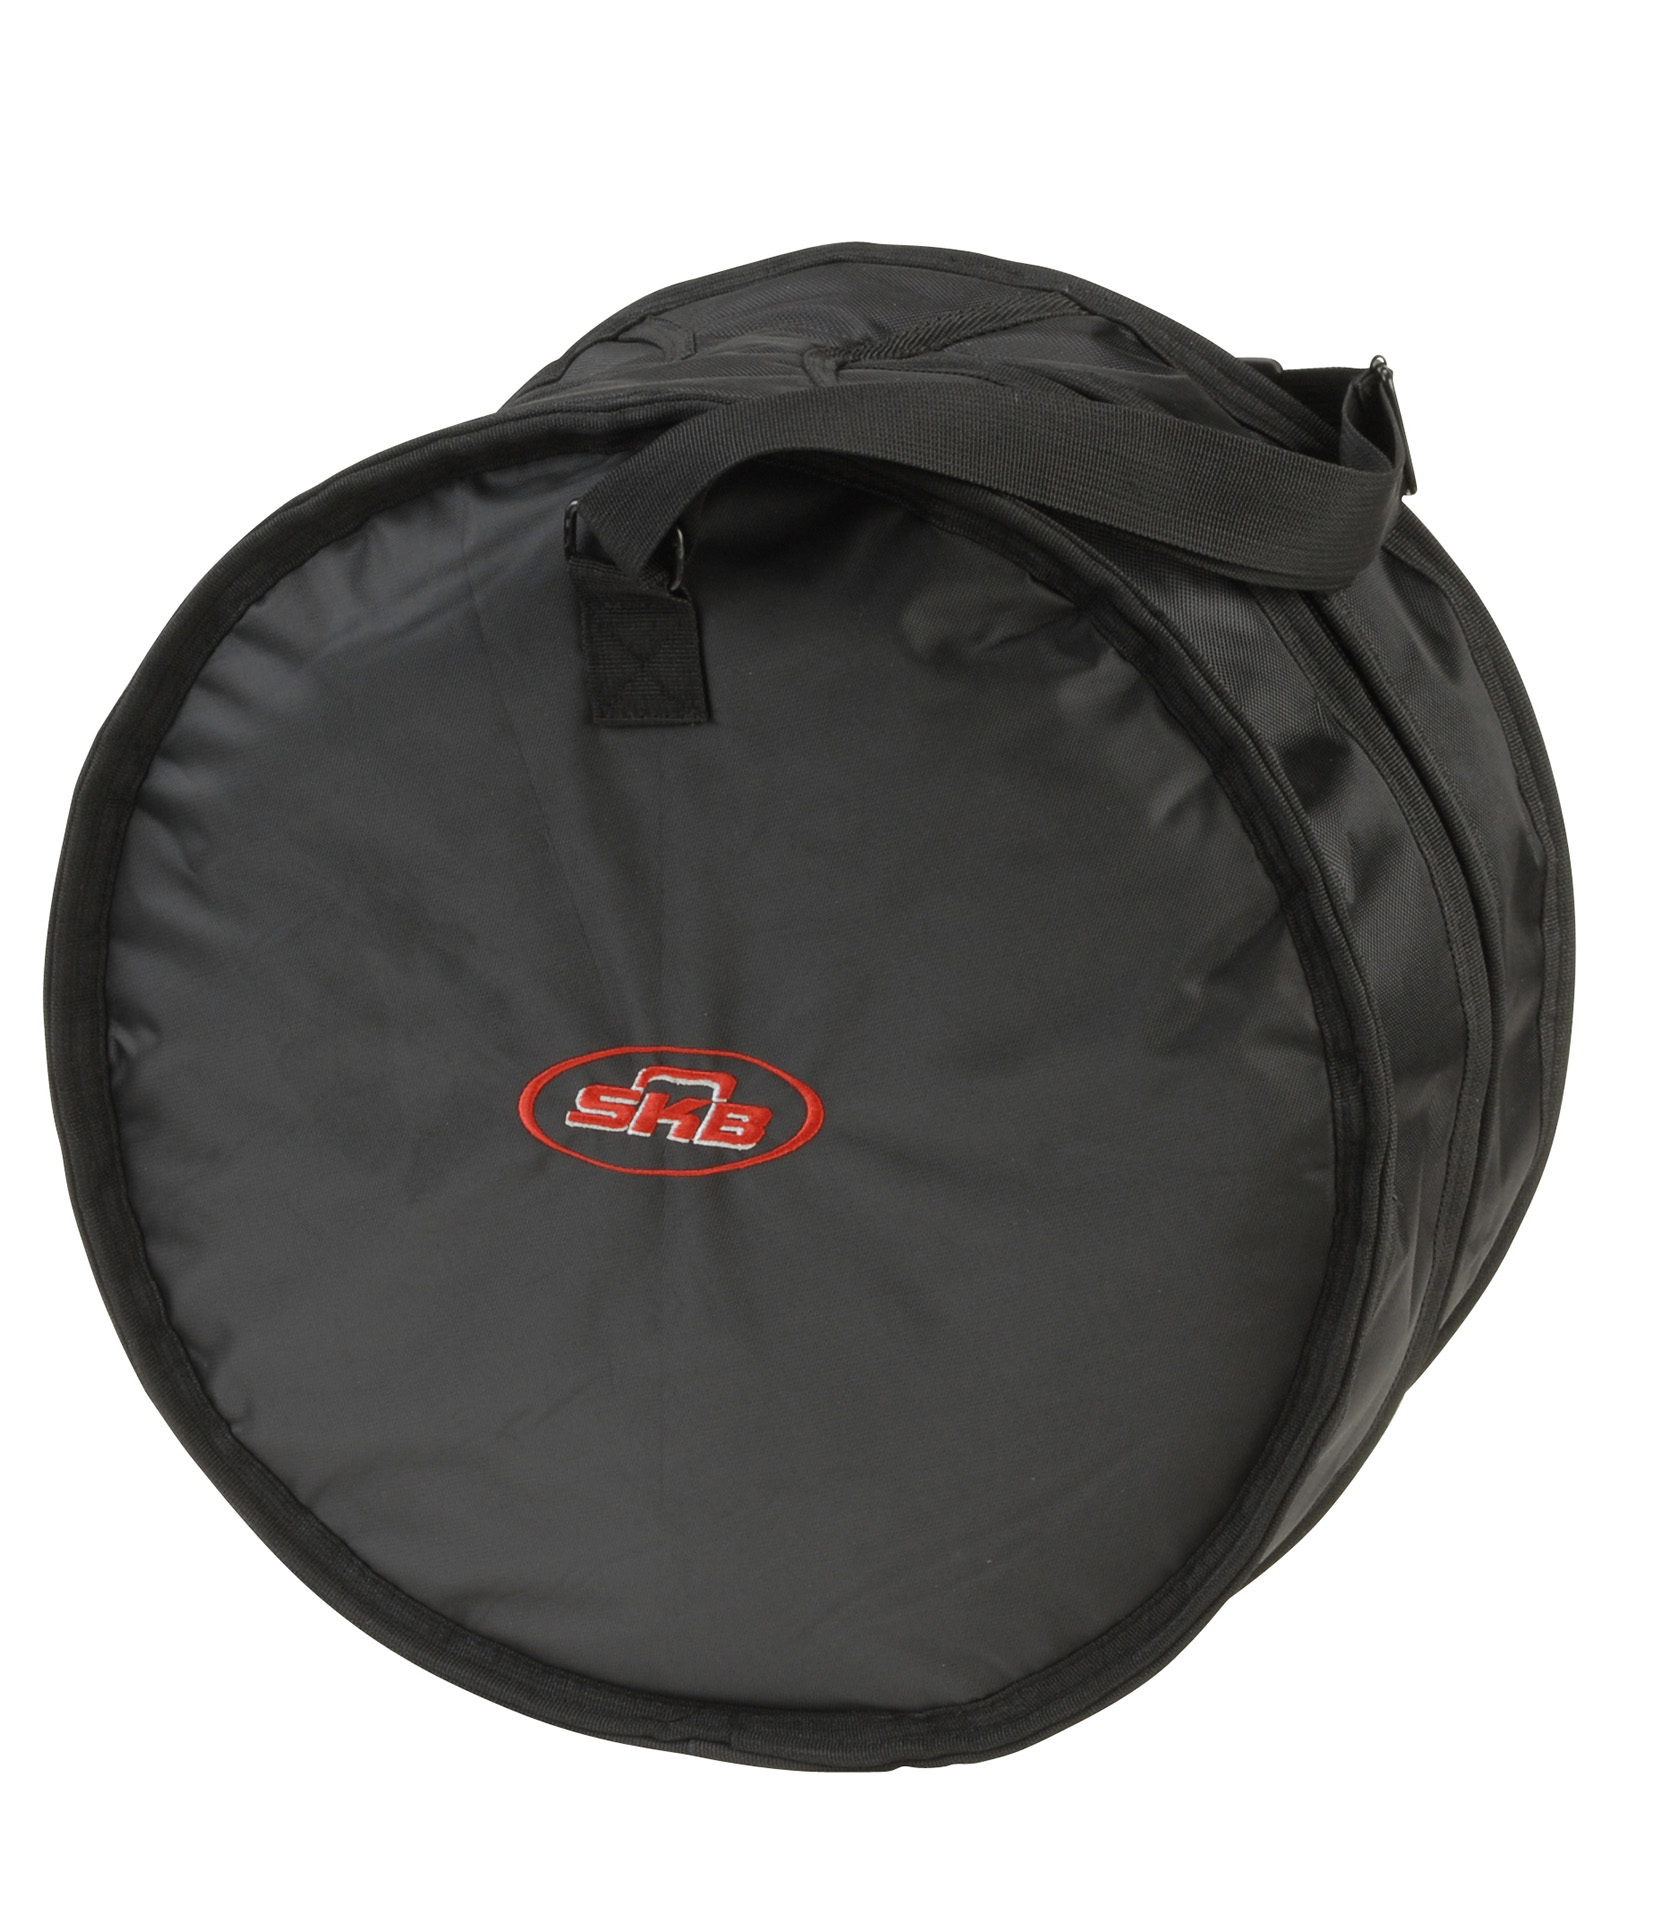 Melody House Musical Instruments Store - 1SKB DB6514 6 5 x 14 Snare Gig Bag